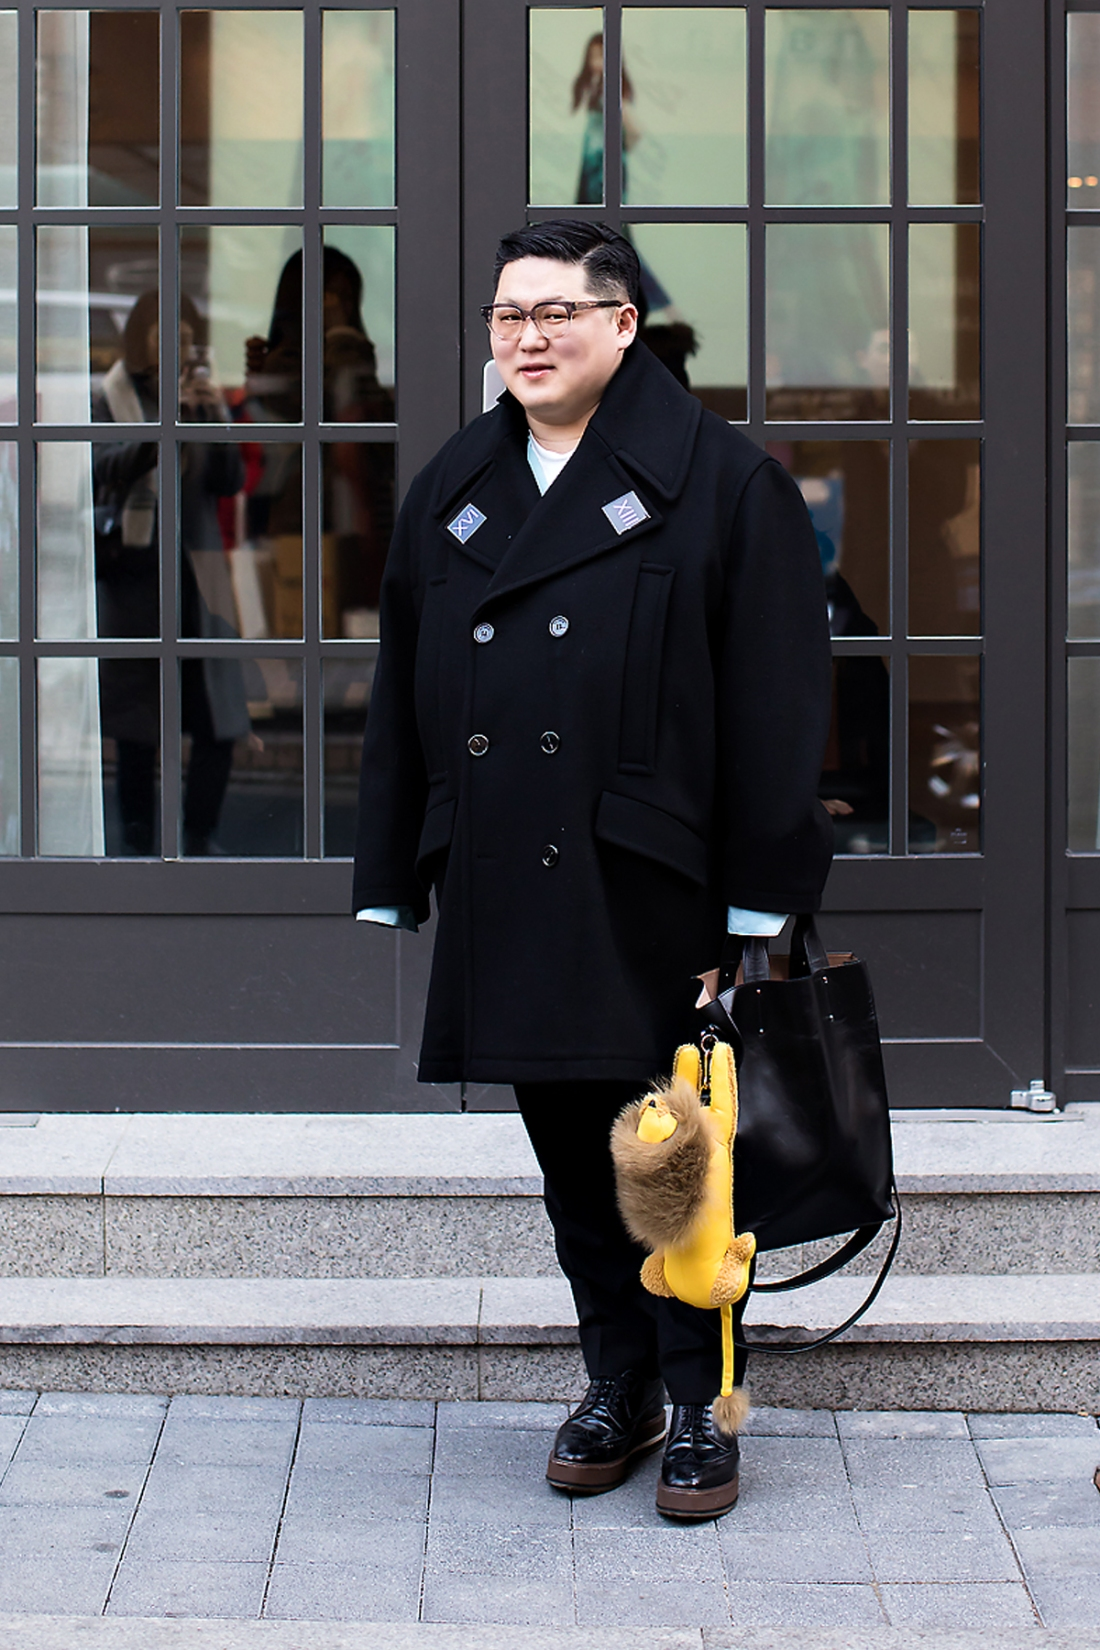 Jung Yoonki, Street Fashion 2017 in SEOUL.jpg